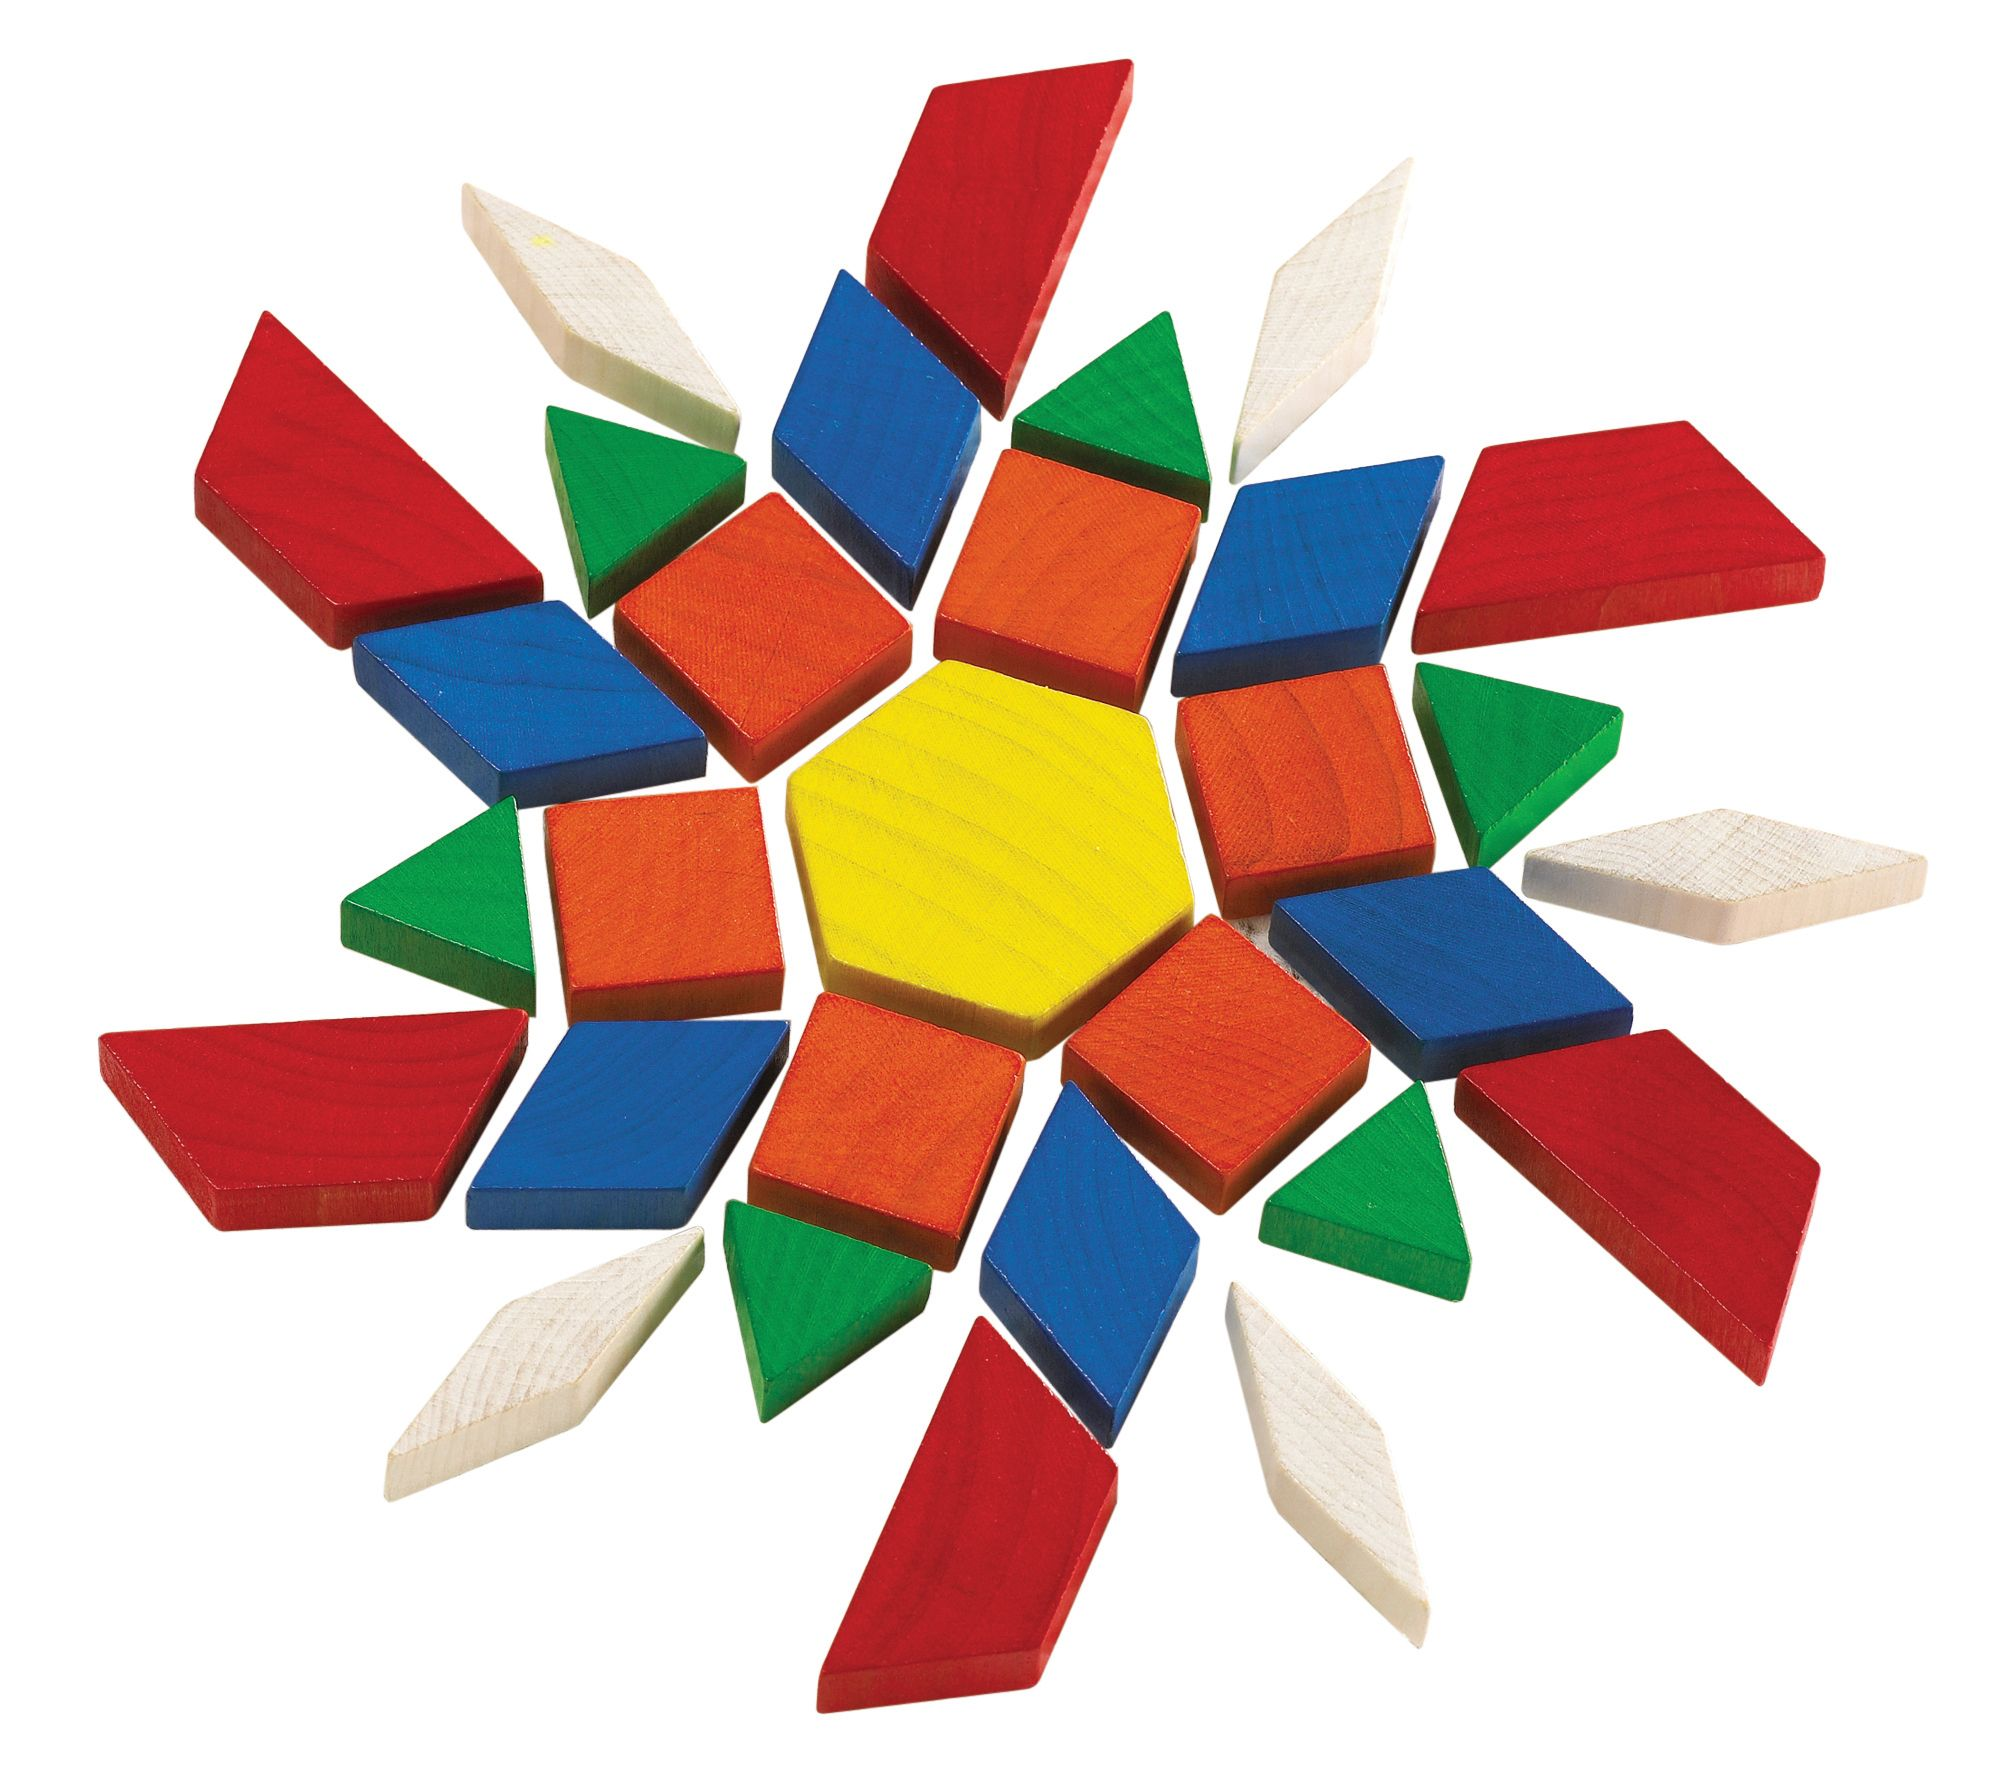 Pattern Blocks for children with Autism Spectrum Disorder